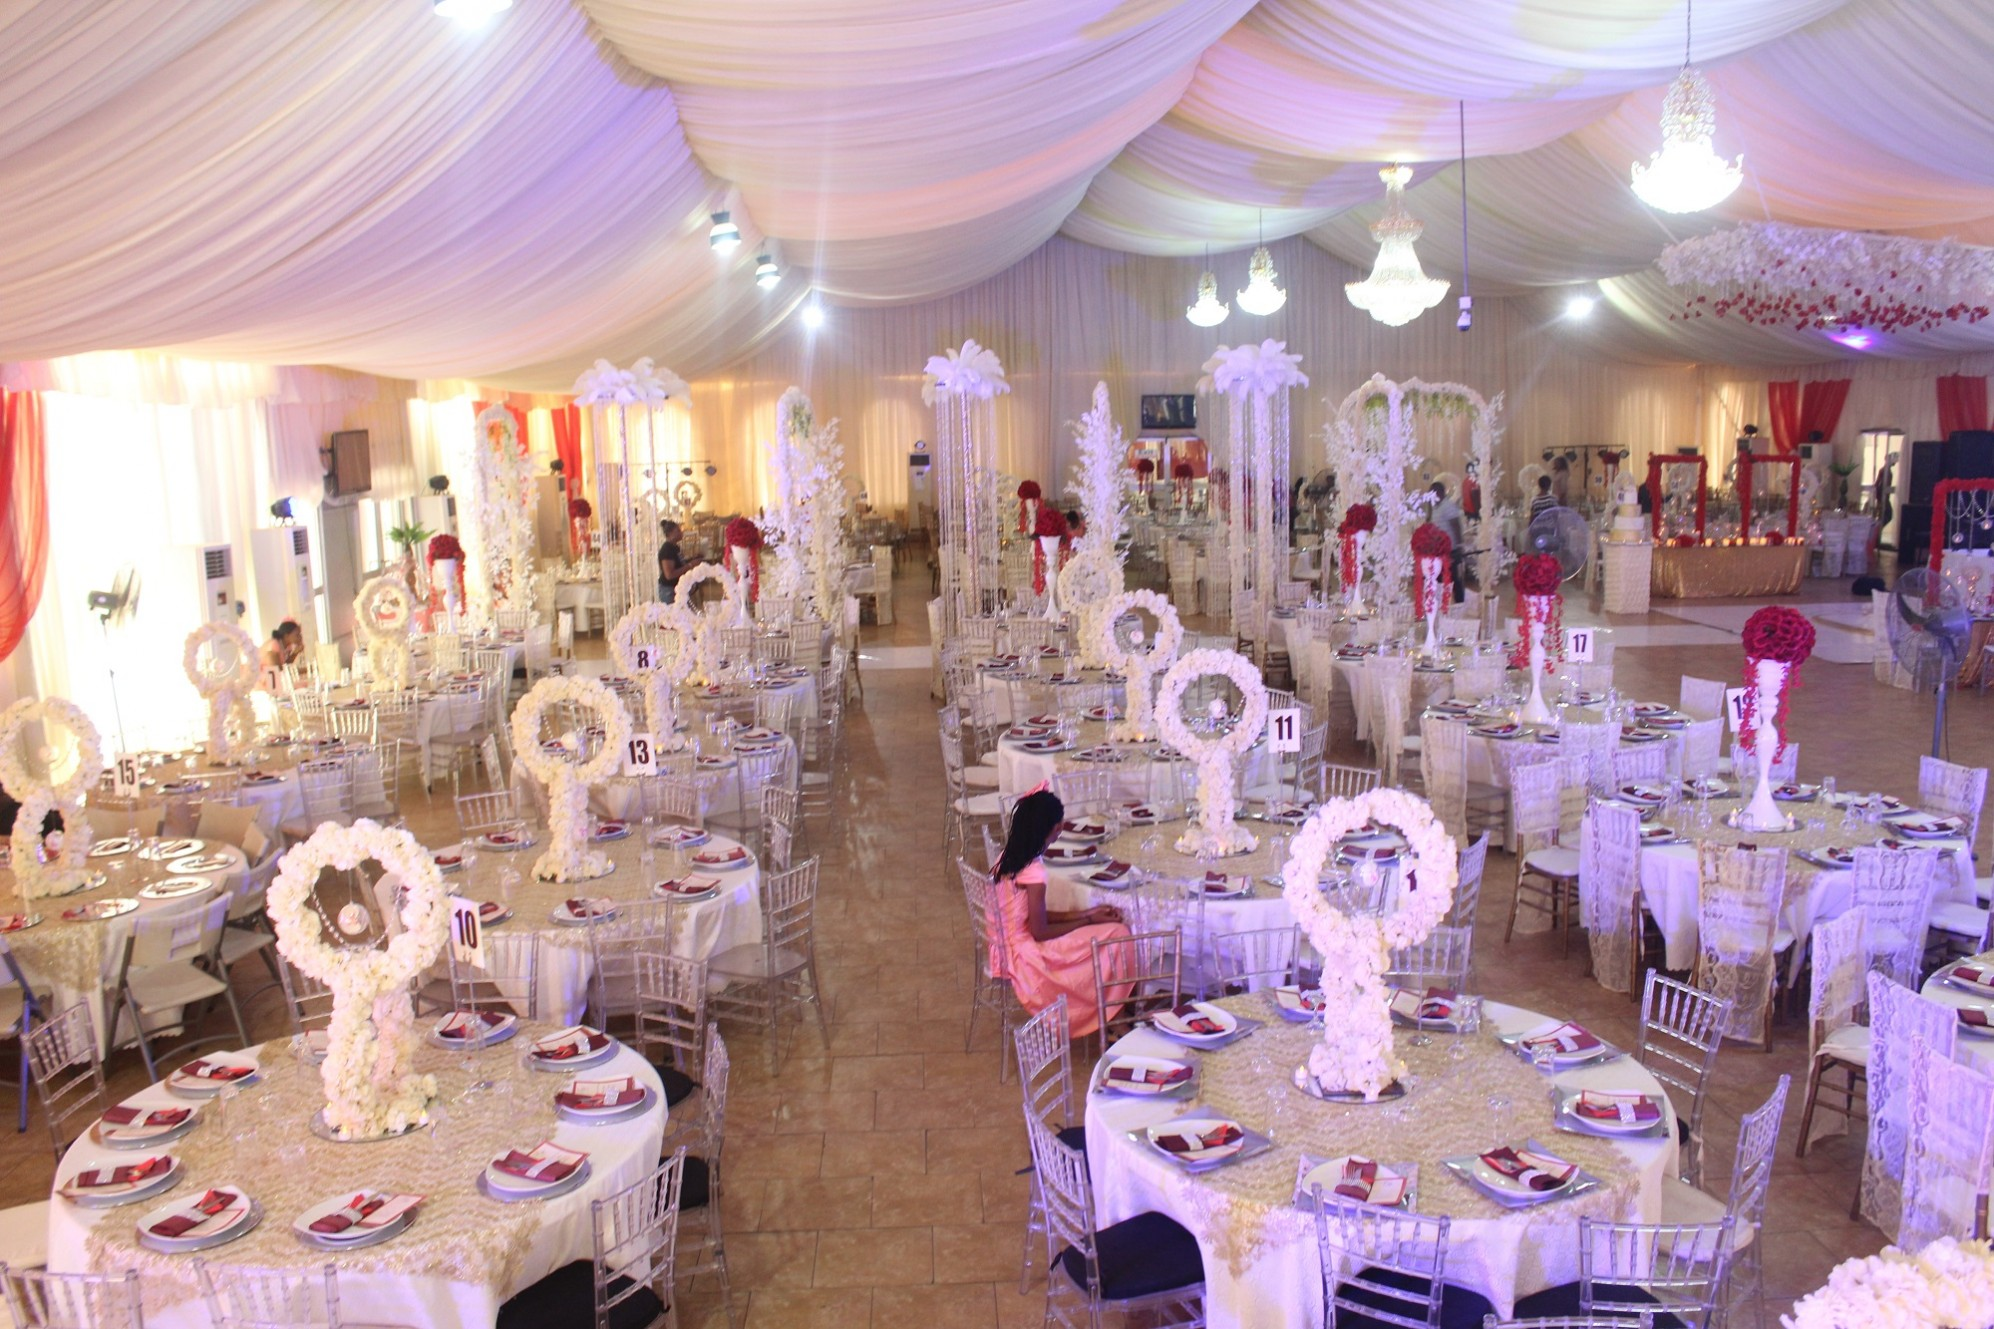 Lagos eases restrictions on social, event centres, pegs occupancy limit at 500